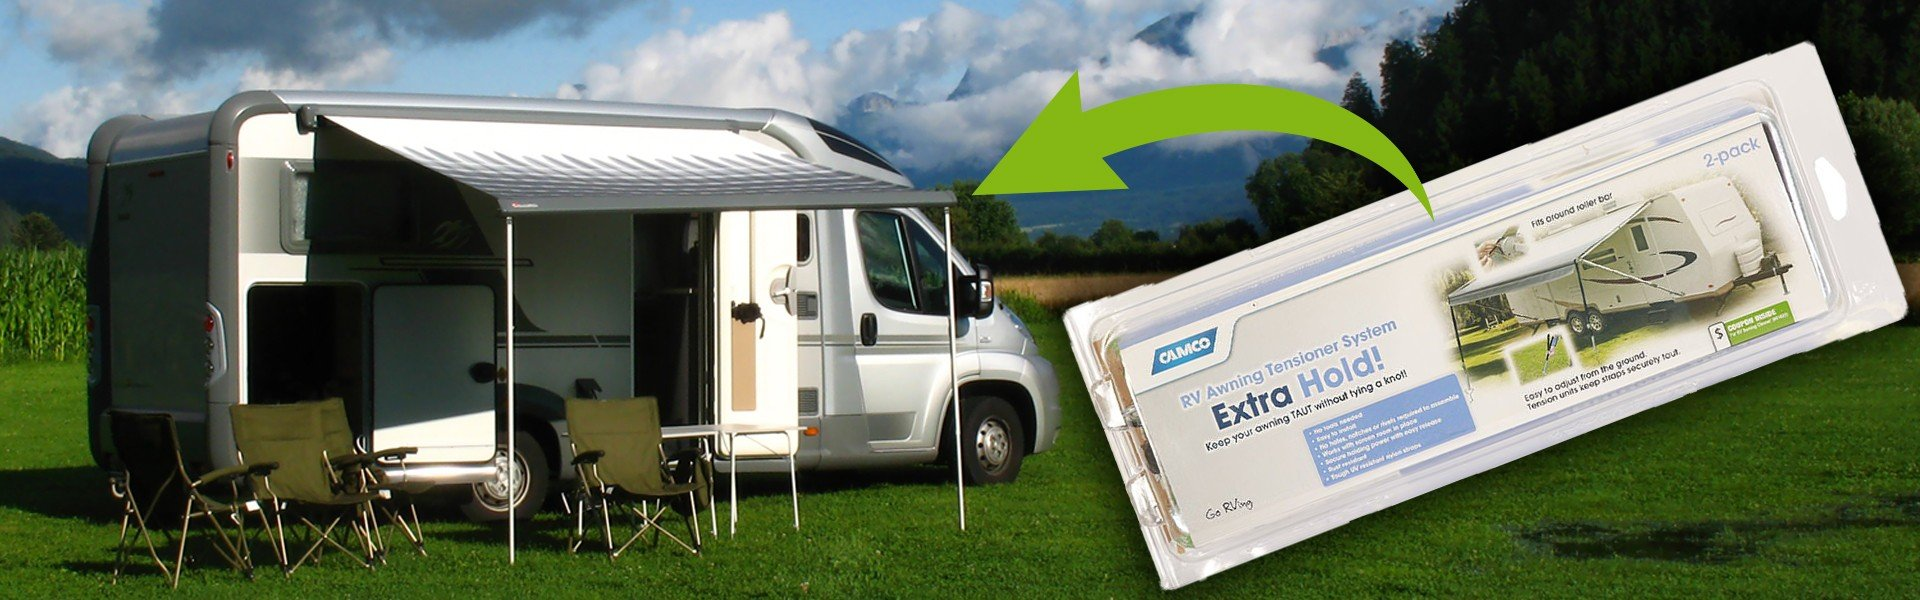 How To Secure Your Electric Awning Hamiltons Rv Blog